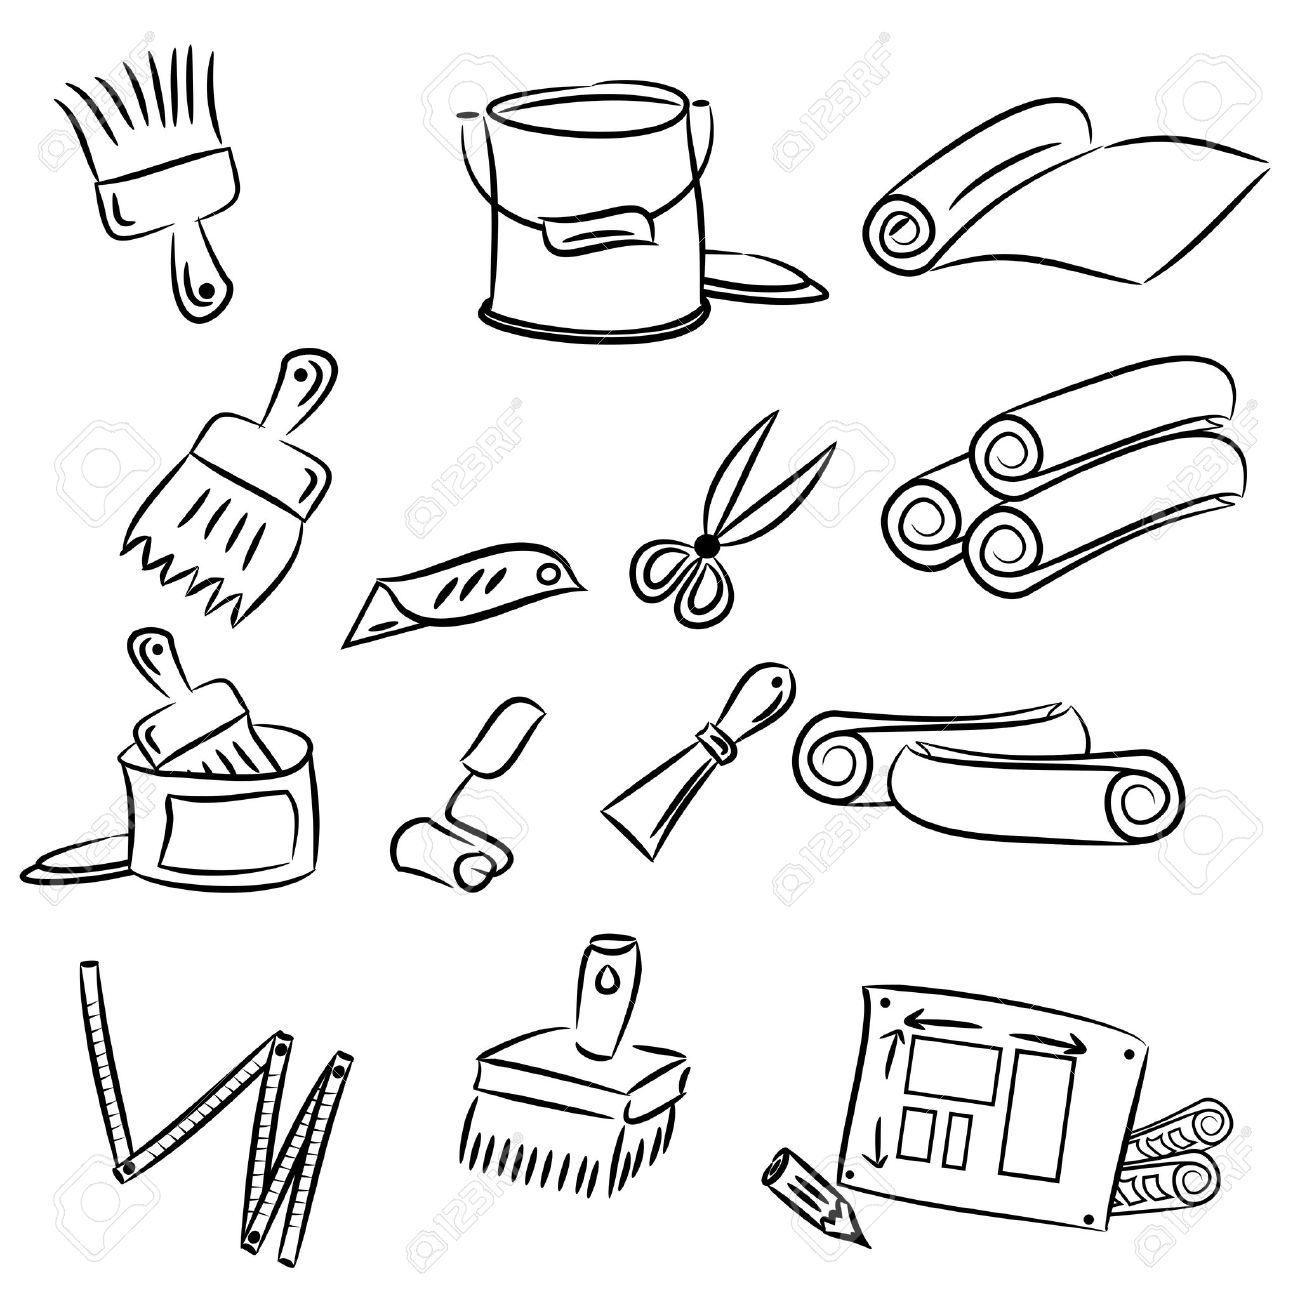 cartoon drawings of DIY tools for decorating and renovating Stock Vector - 15875327